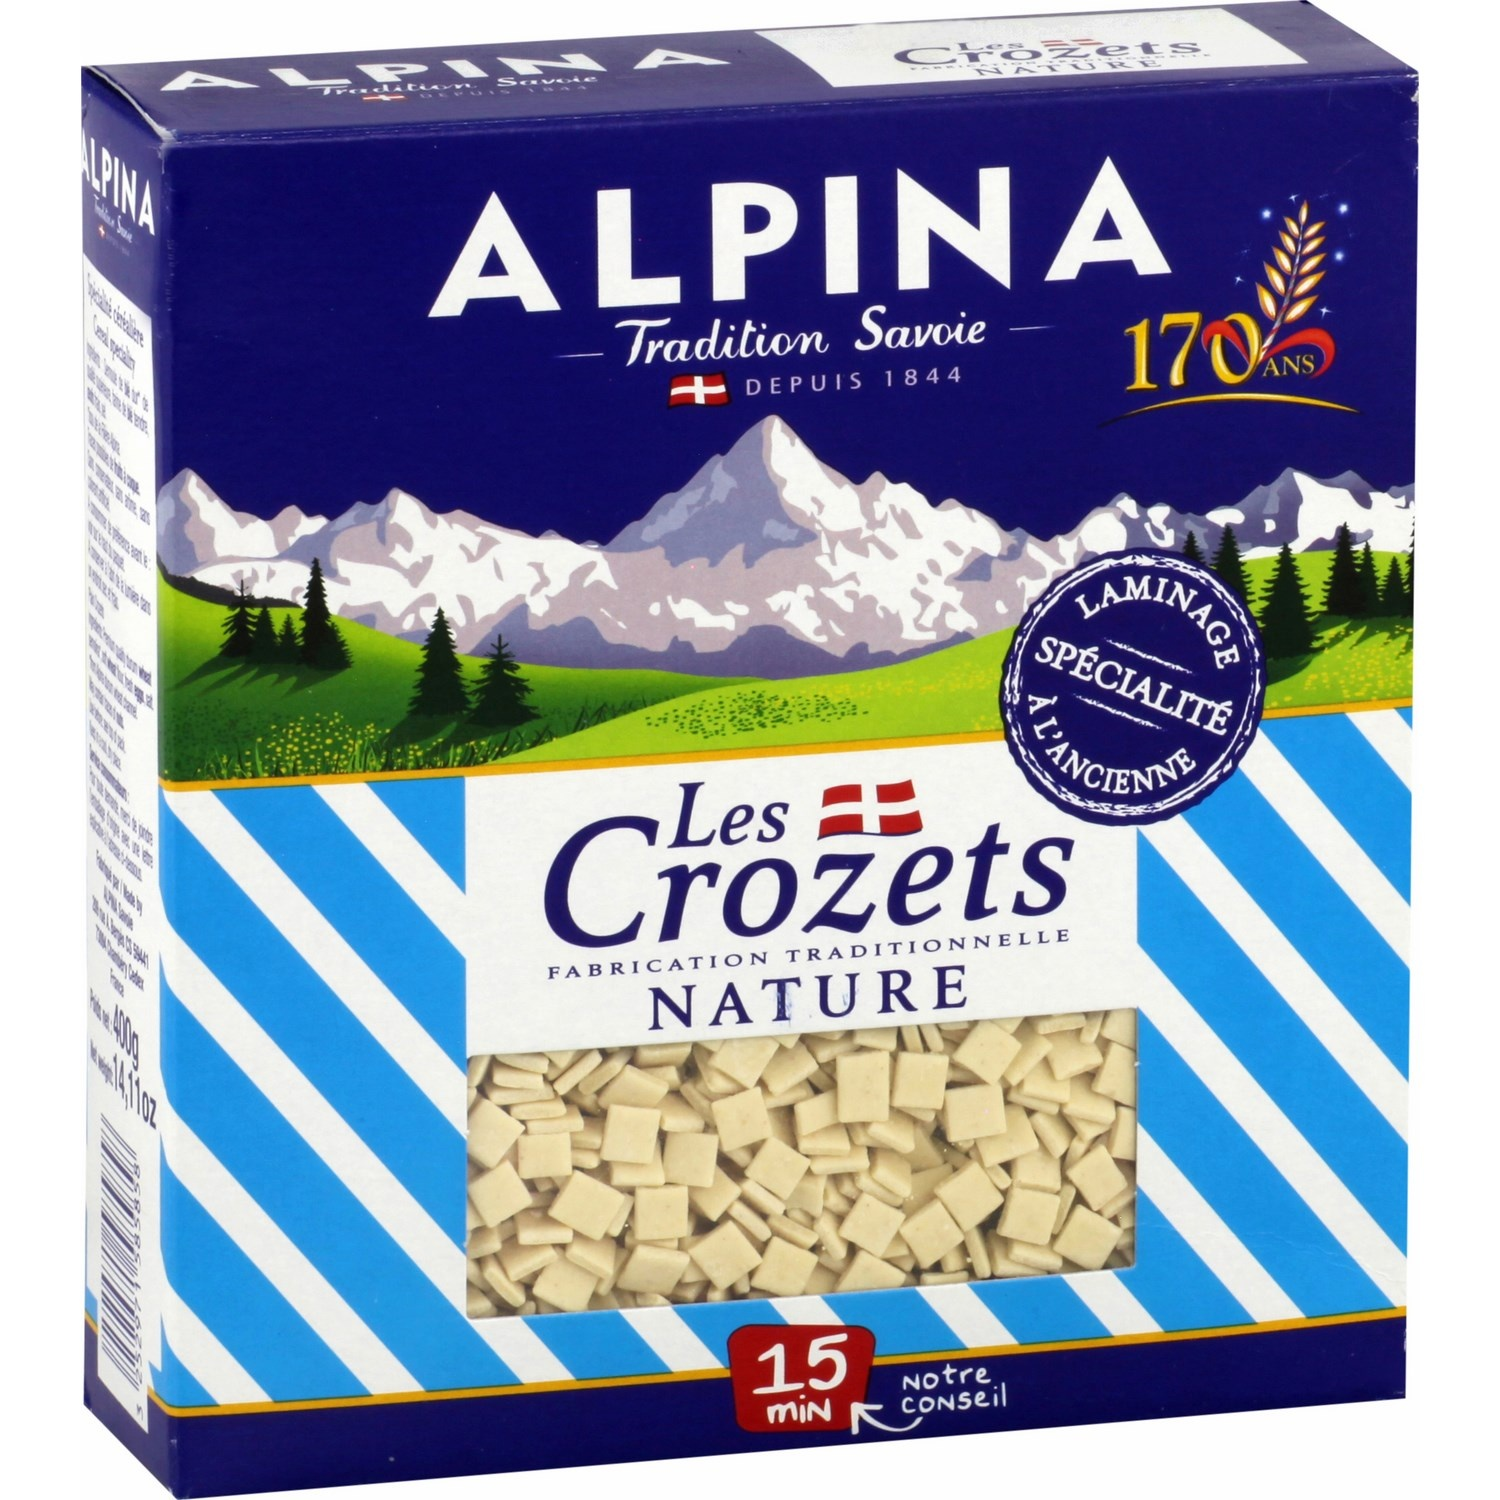 Crozet nature Alpina (400 g)